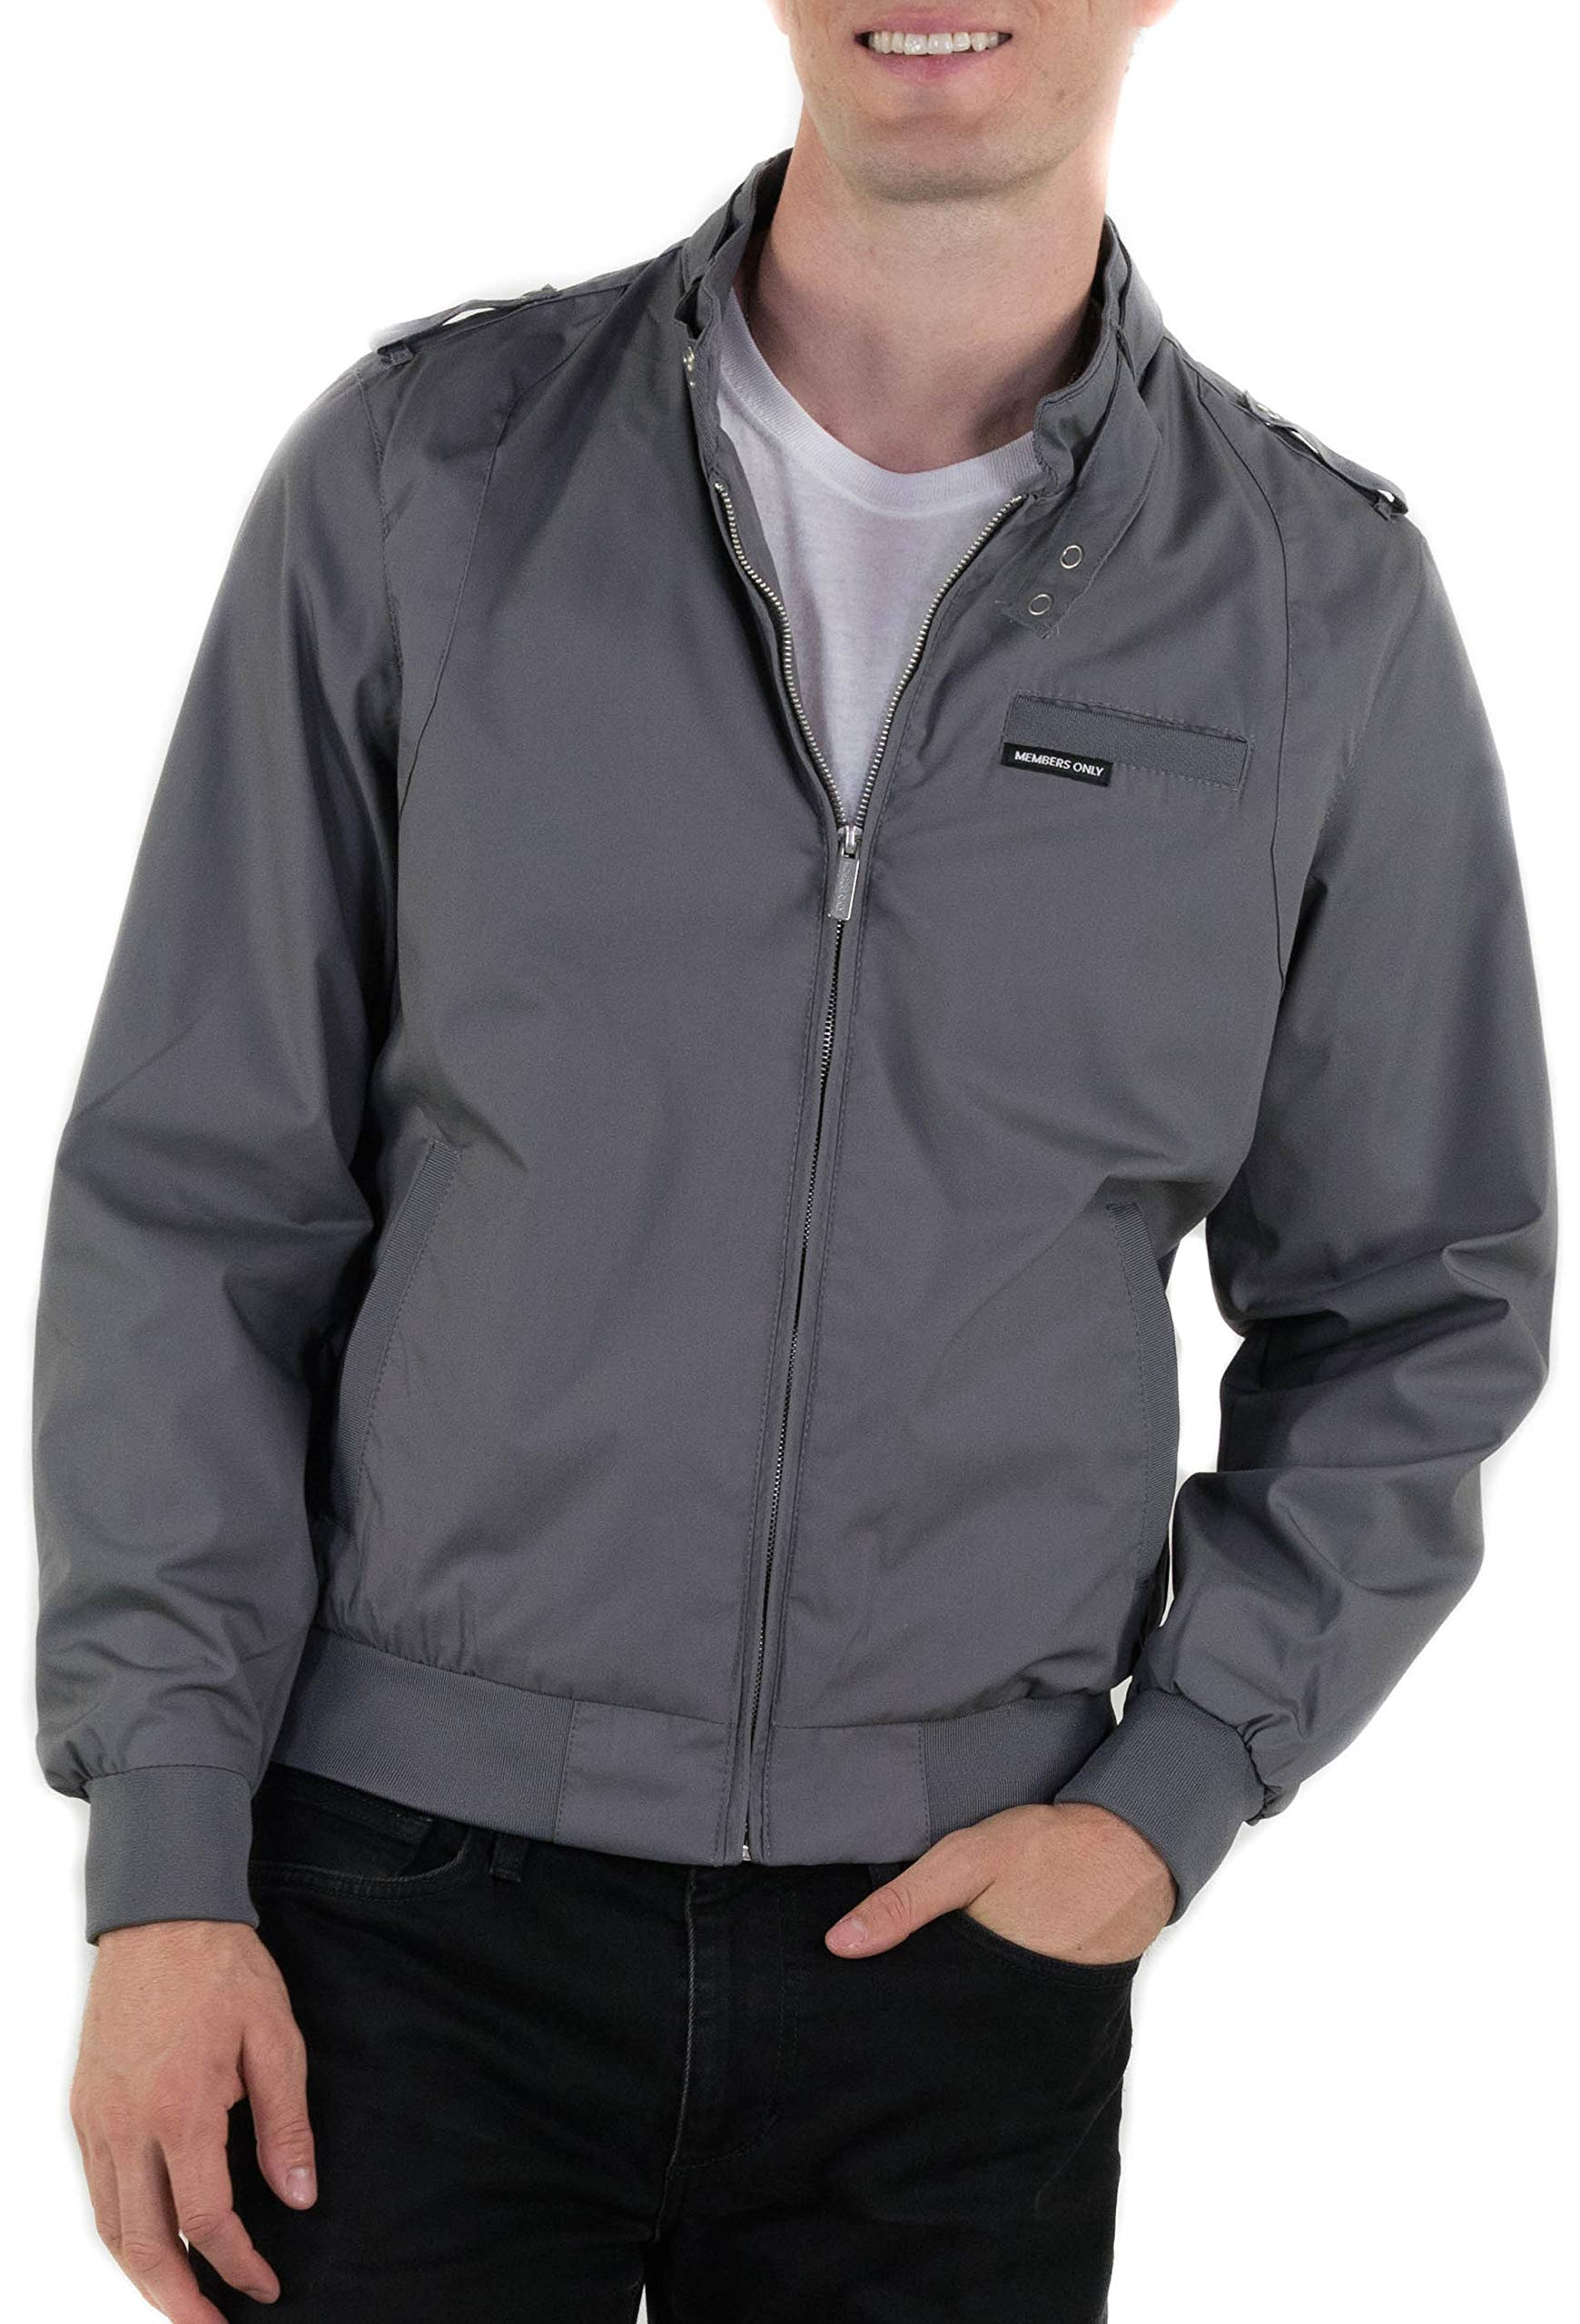 Members Only Men's Original Iconic Racer Jacket, Grey, Medium by Members Only